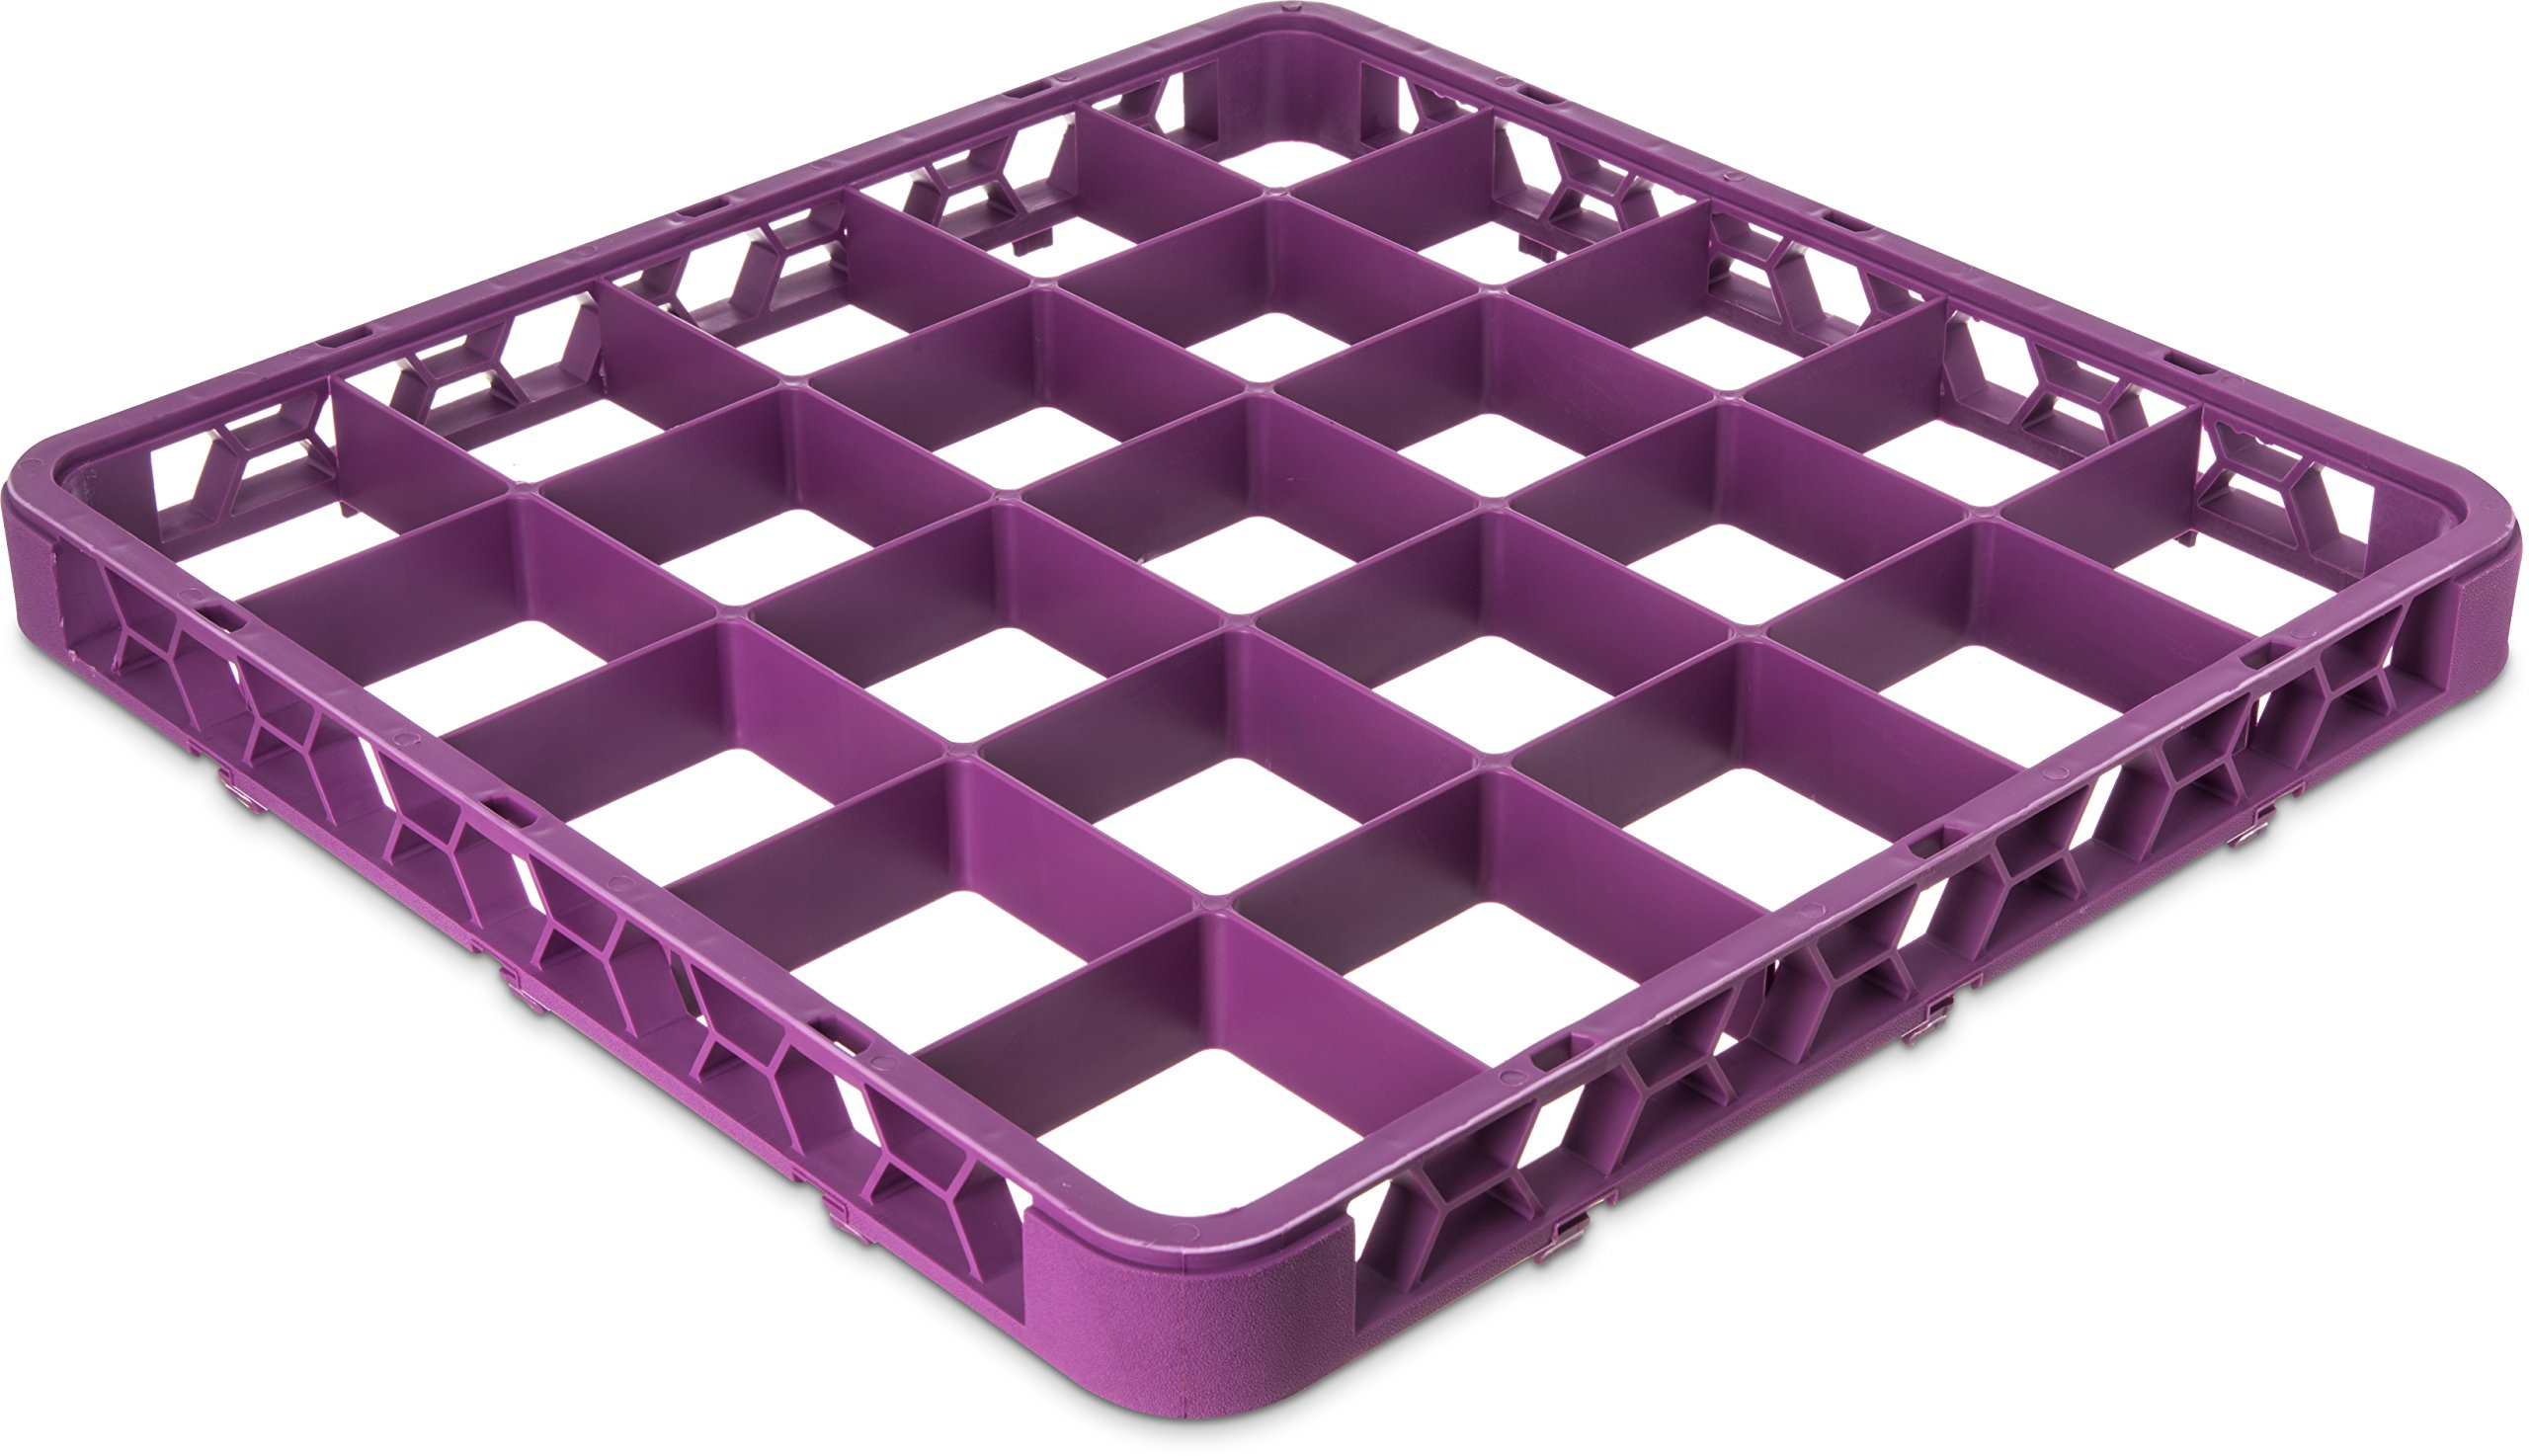 Carlisle RE25C89 OptiClean 25 Compartment Cup Rack Extender, 3-1/2'' Compartments, Lavender (Pack of 6)